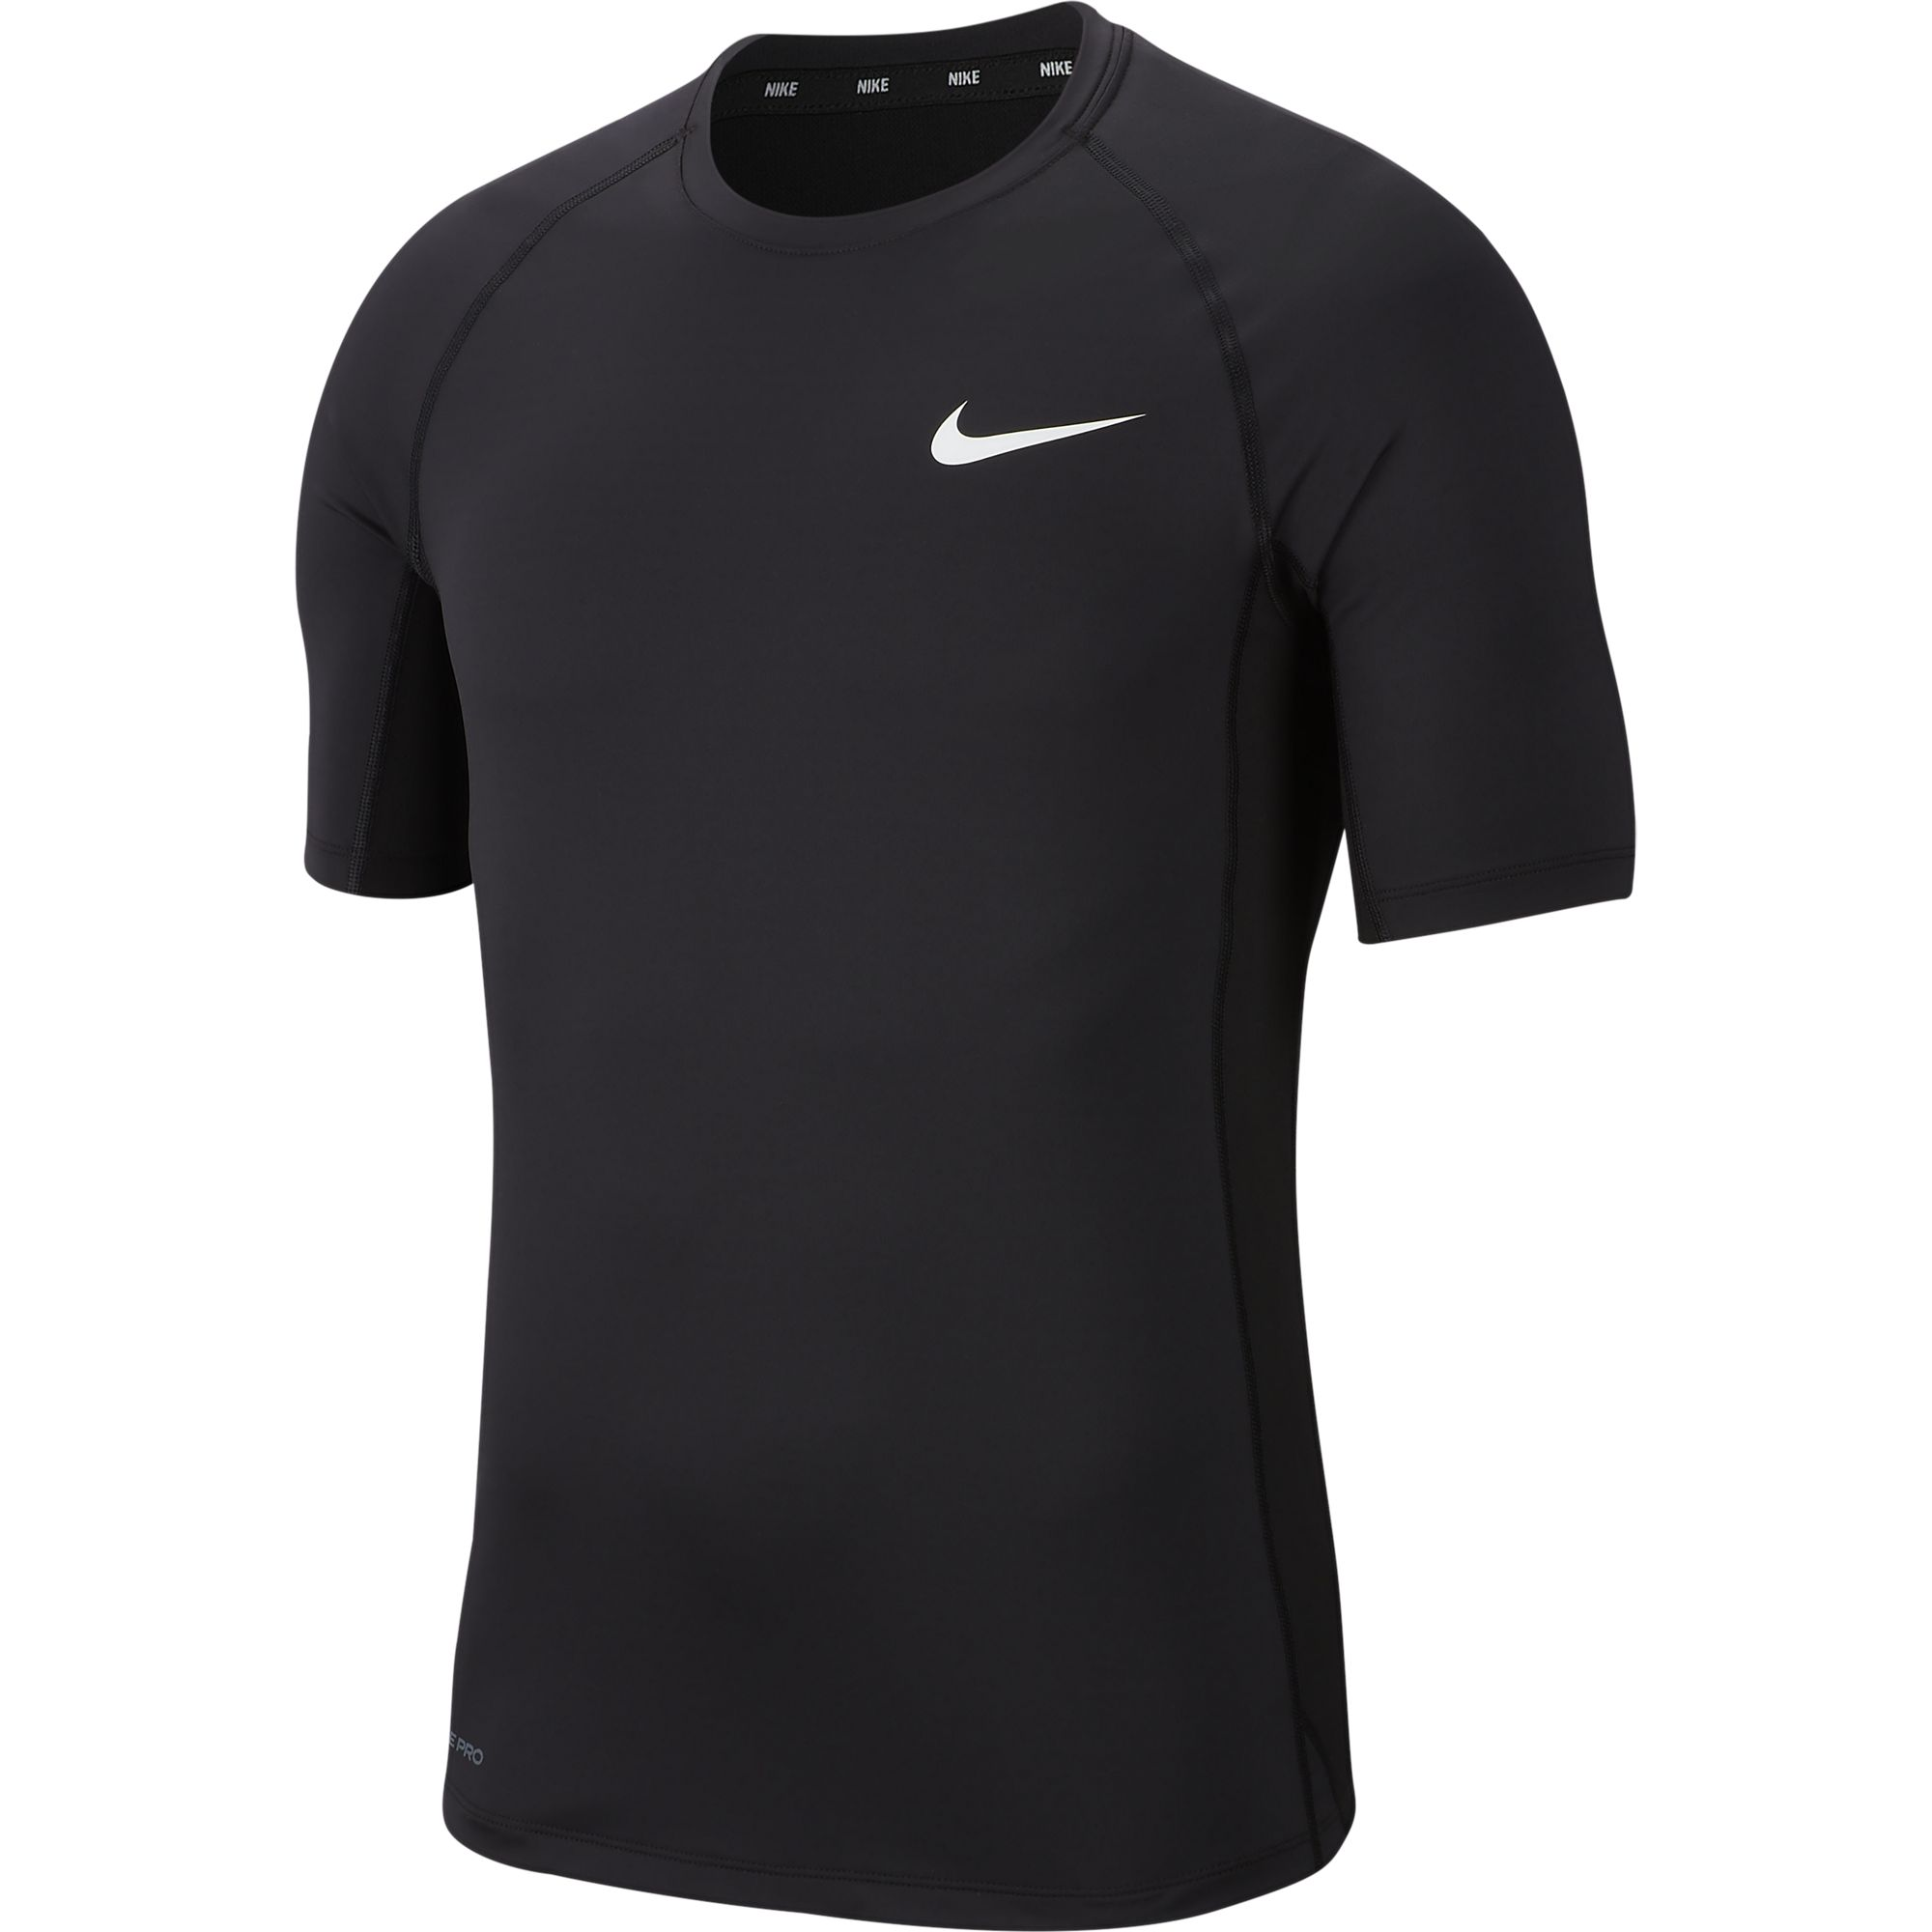 Men's Pro Short-Sleeve Top, Black, swatch